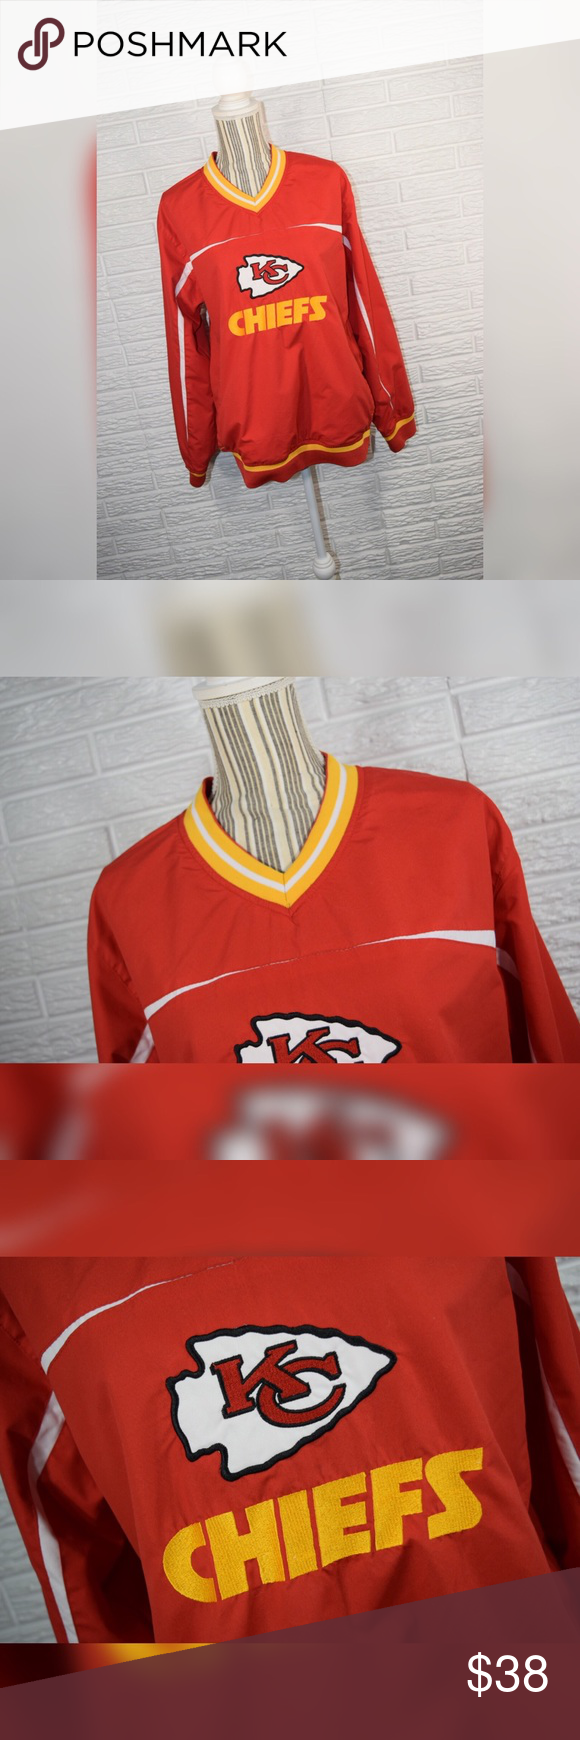 NFL Apparel   Kansas City Chiefs Sweatshirt Red, yellow, and white  for sale